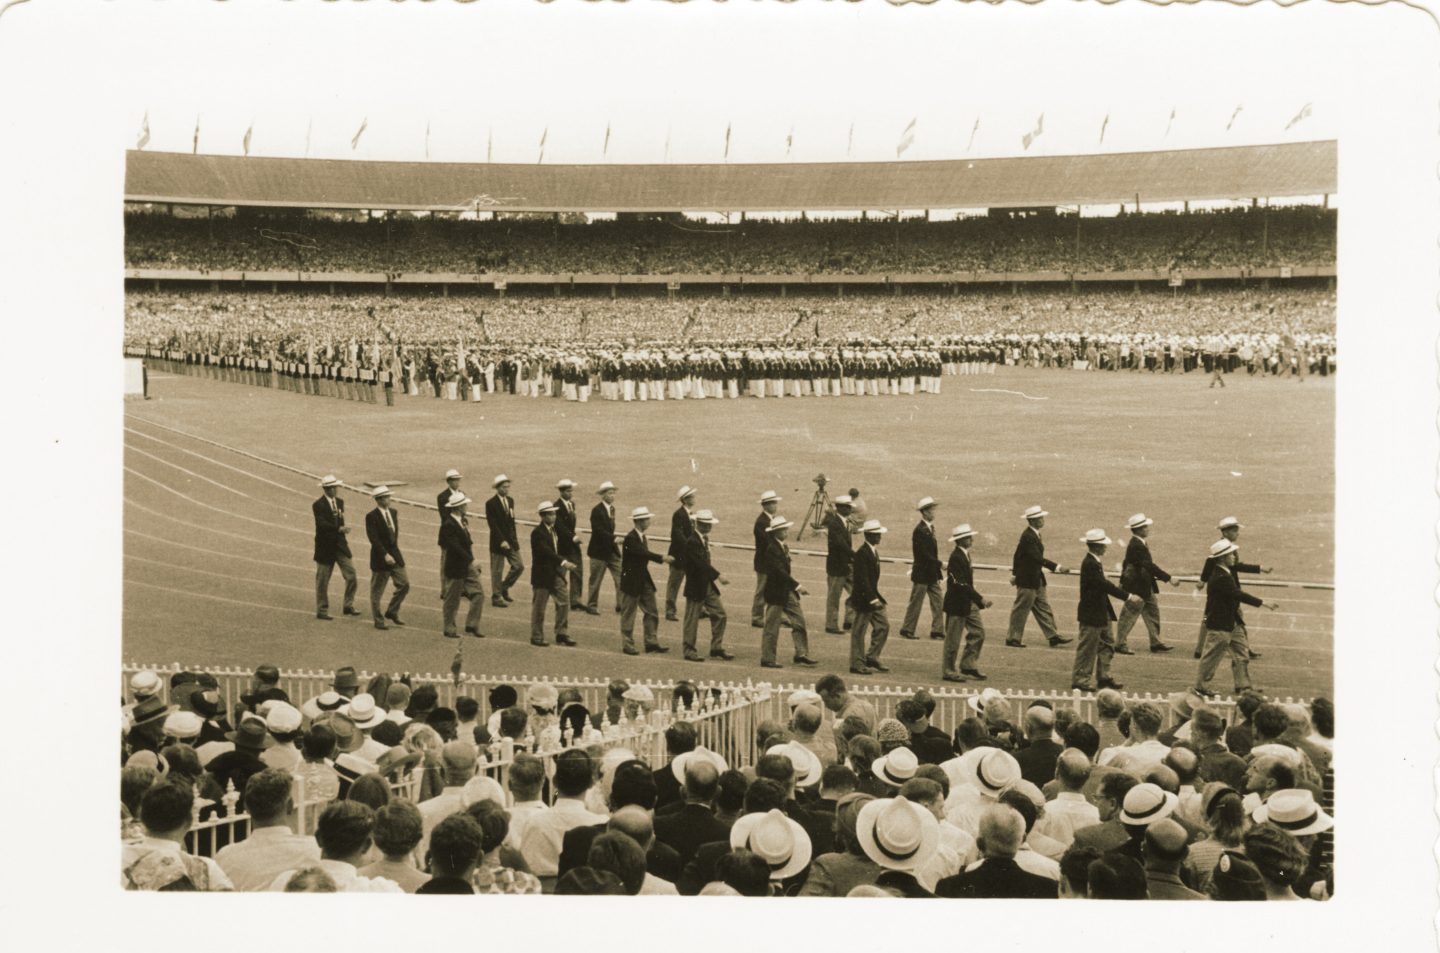 Tan Eng Liang opening of the 1956 Melbourne Olympics